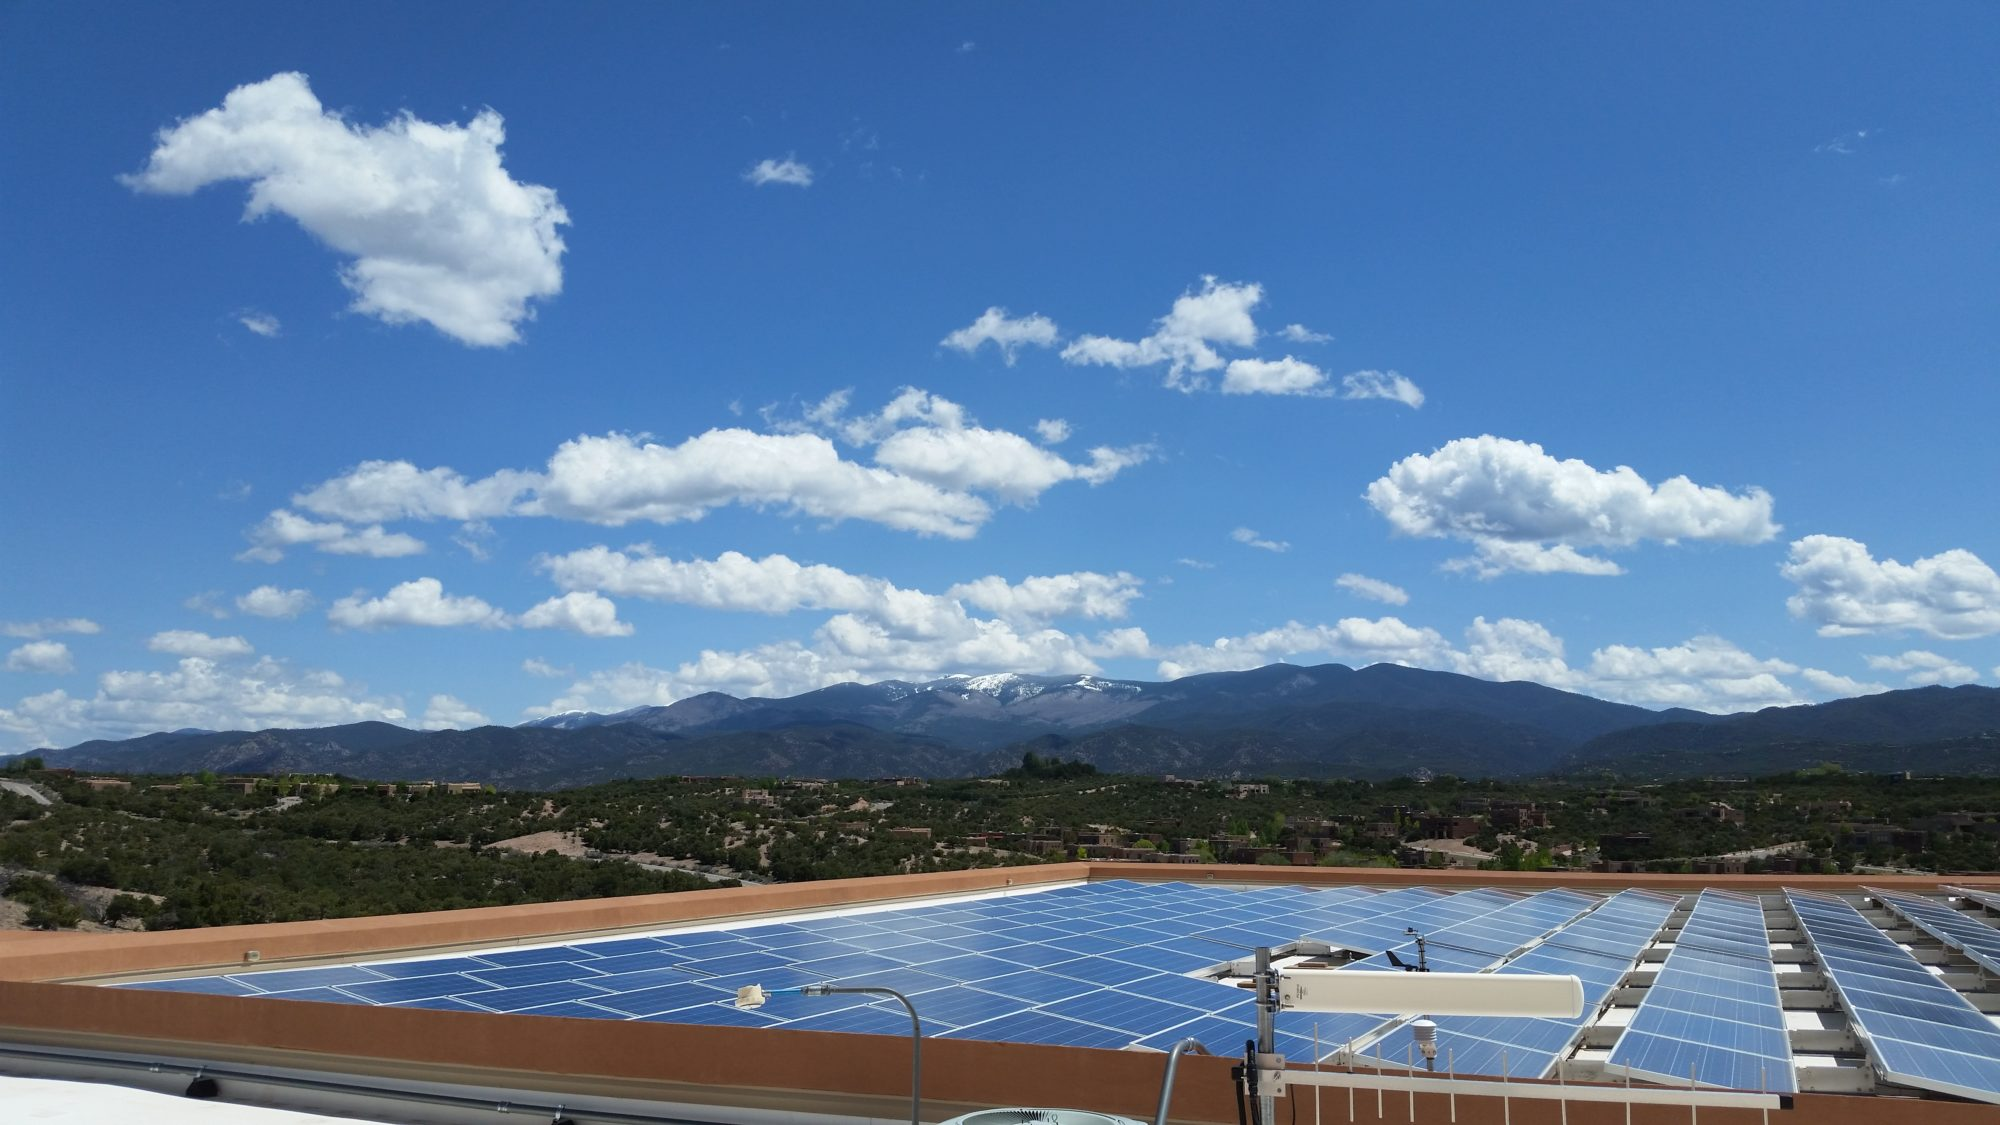 Solar Panel Cleaning Albuquerque NM